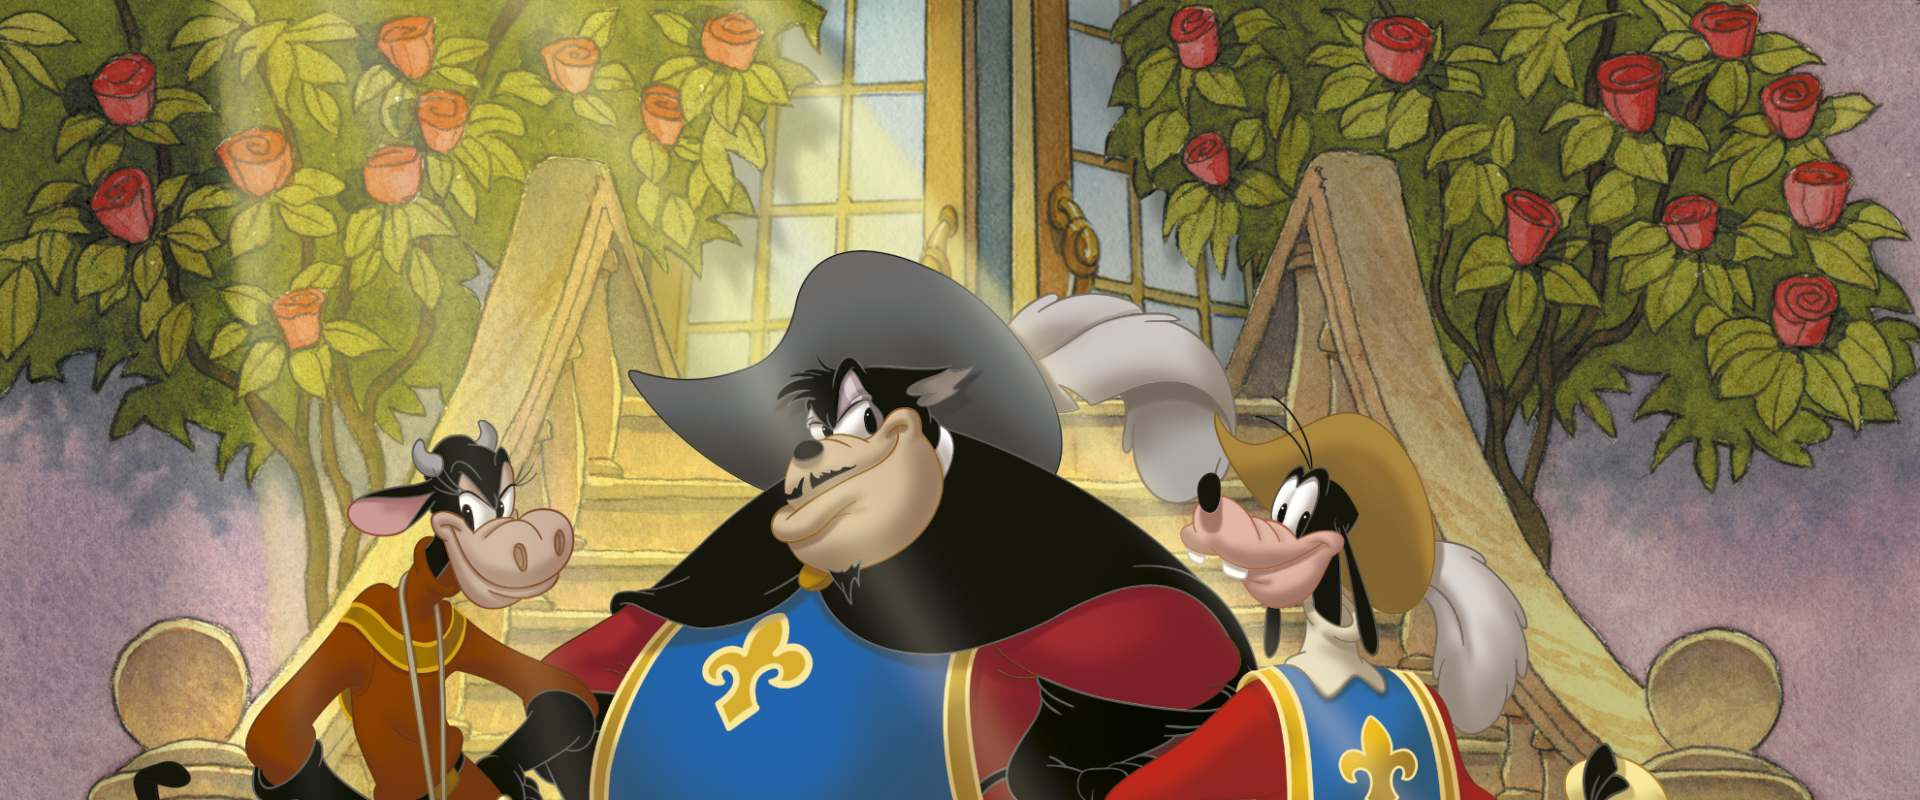 Mickey, Donald, Goofy: The Three Musketeers background 2